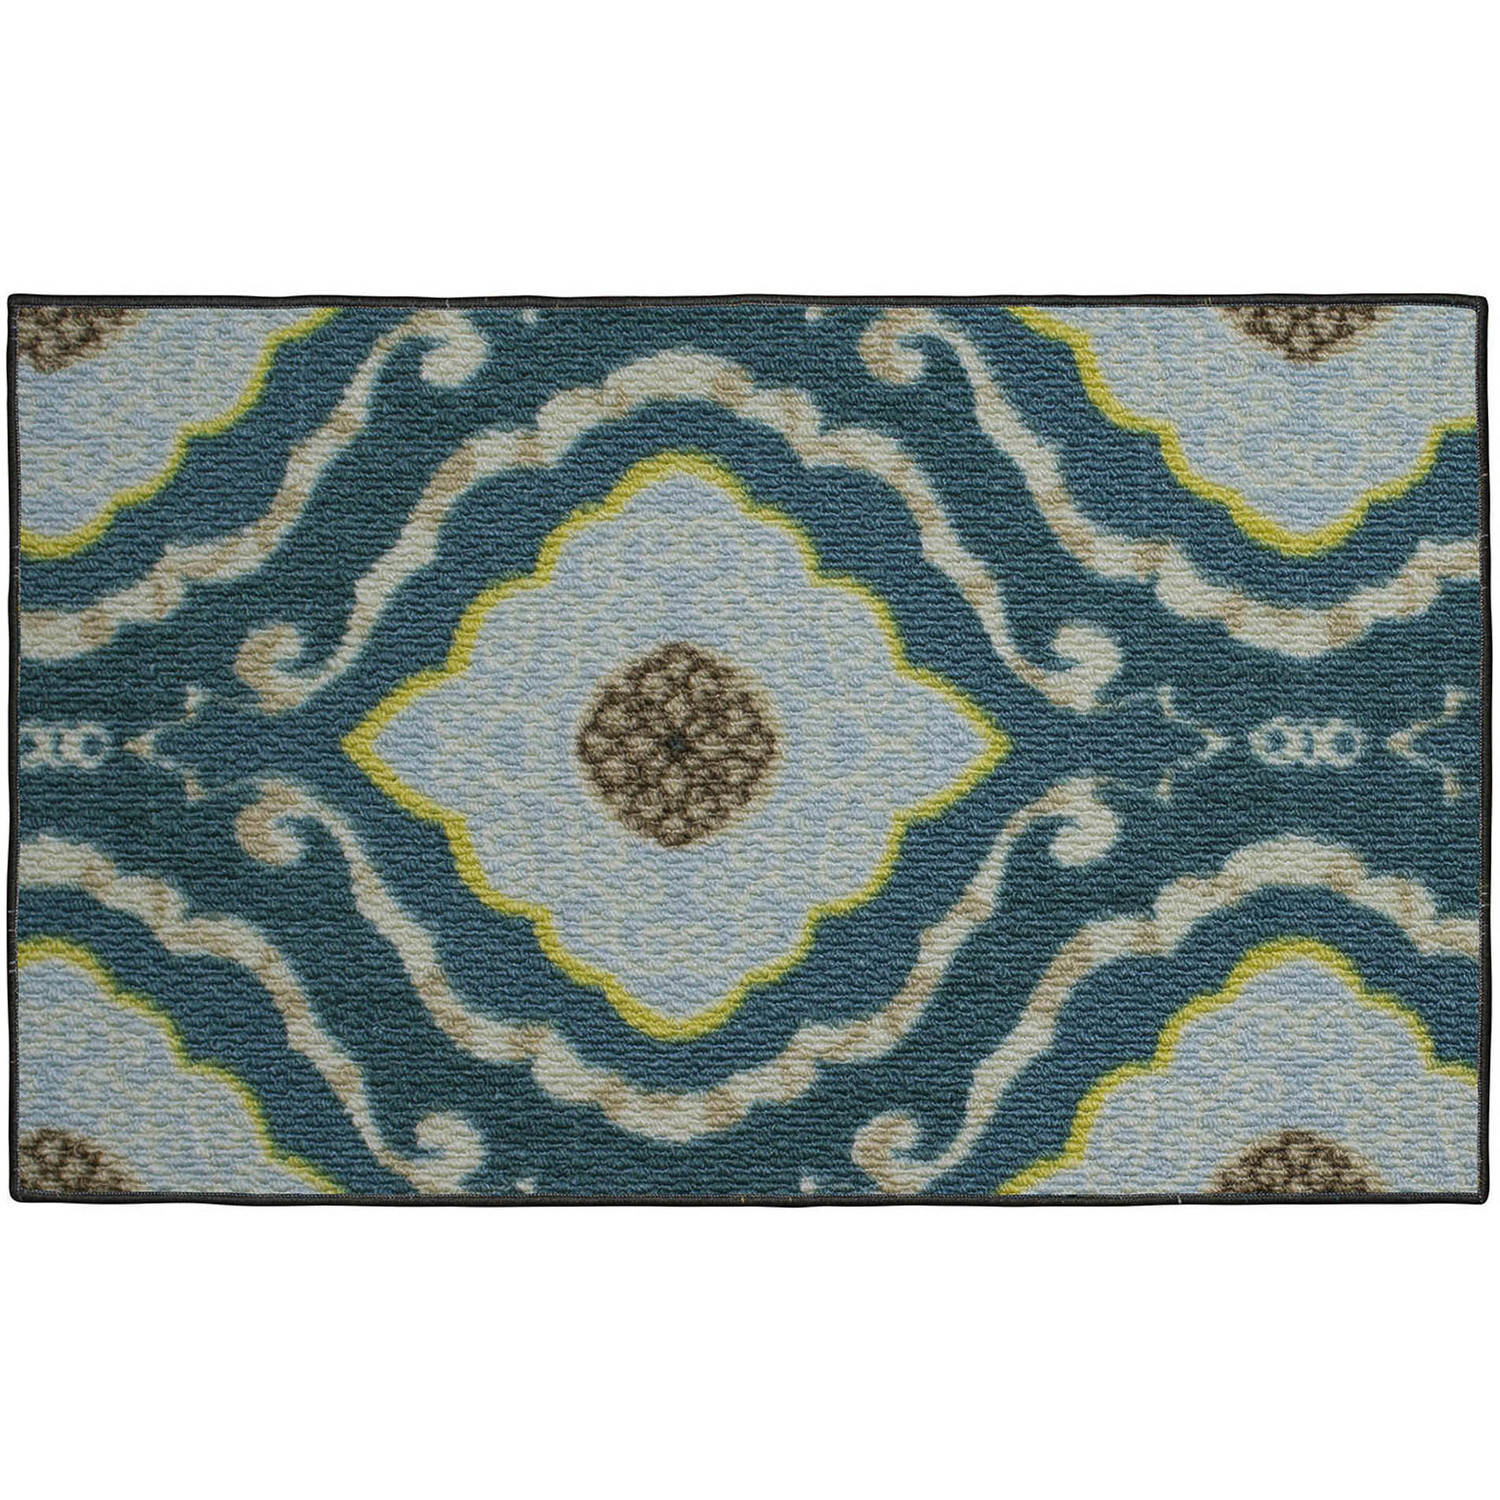 Structures Julianna Textured Printed Accent Rug by Generic